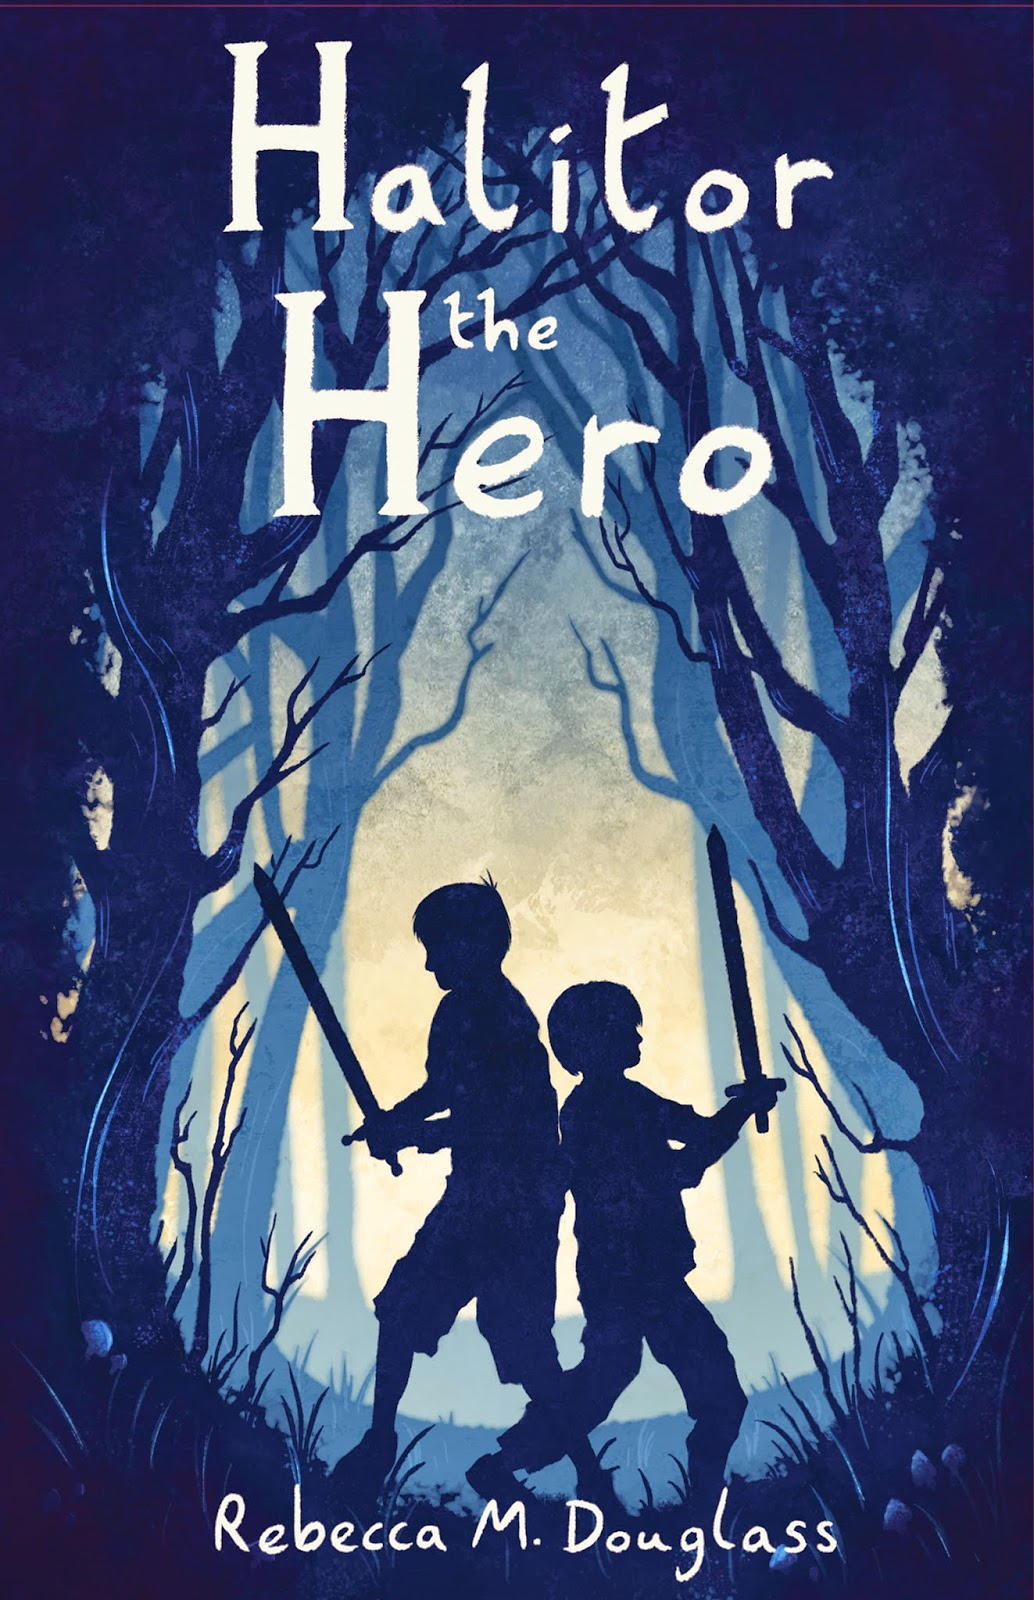 Book Blast: Halitor the Hero by Rebecca M Douglass